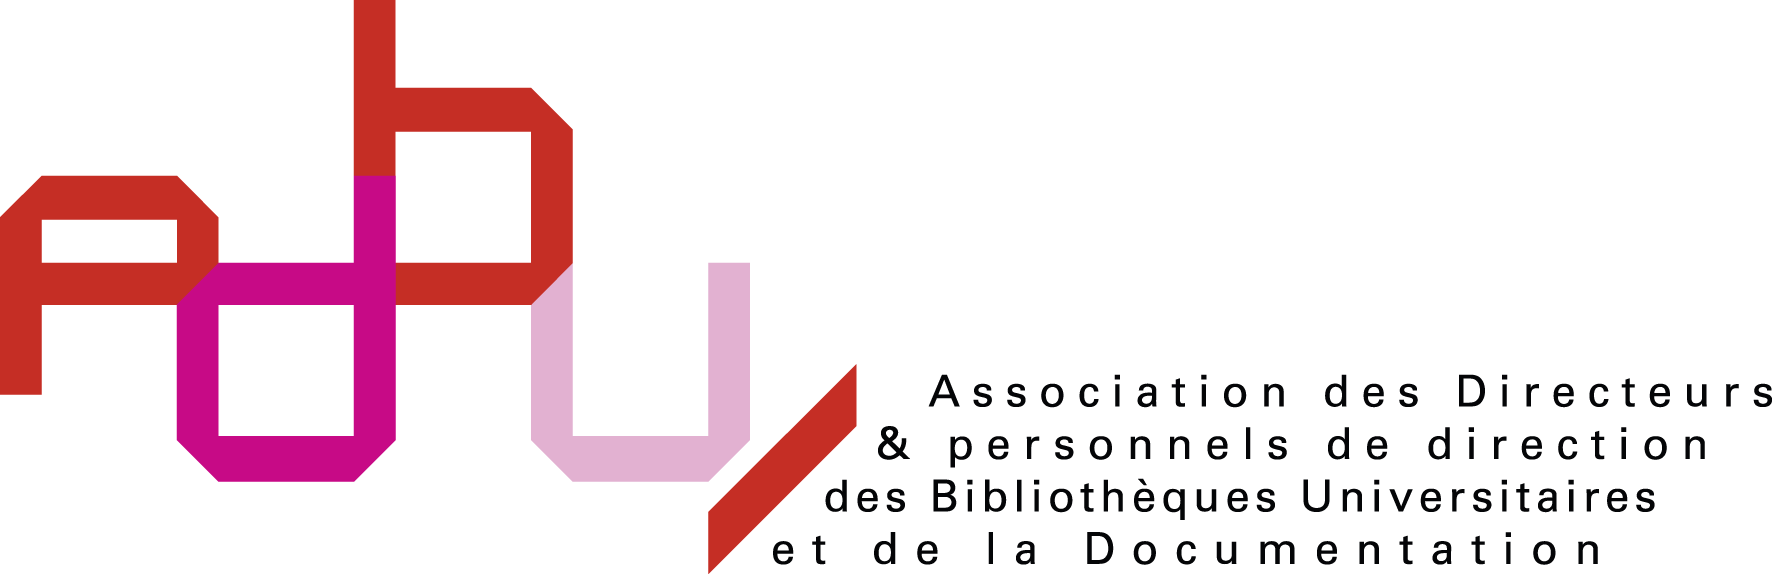 Association of France's university libraries' directors and management staff